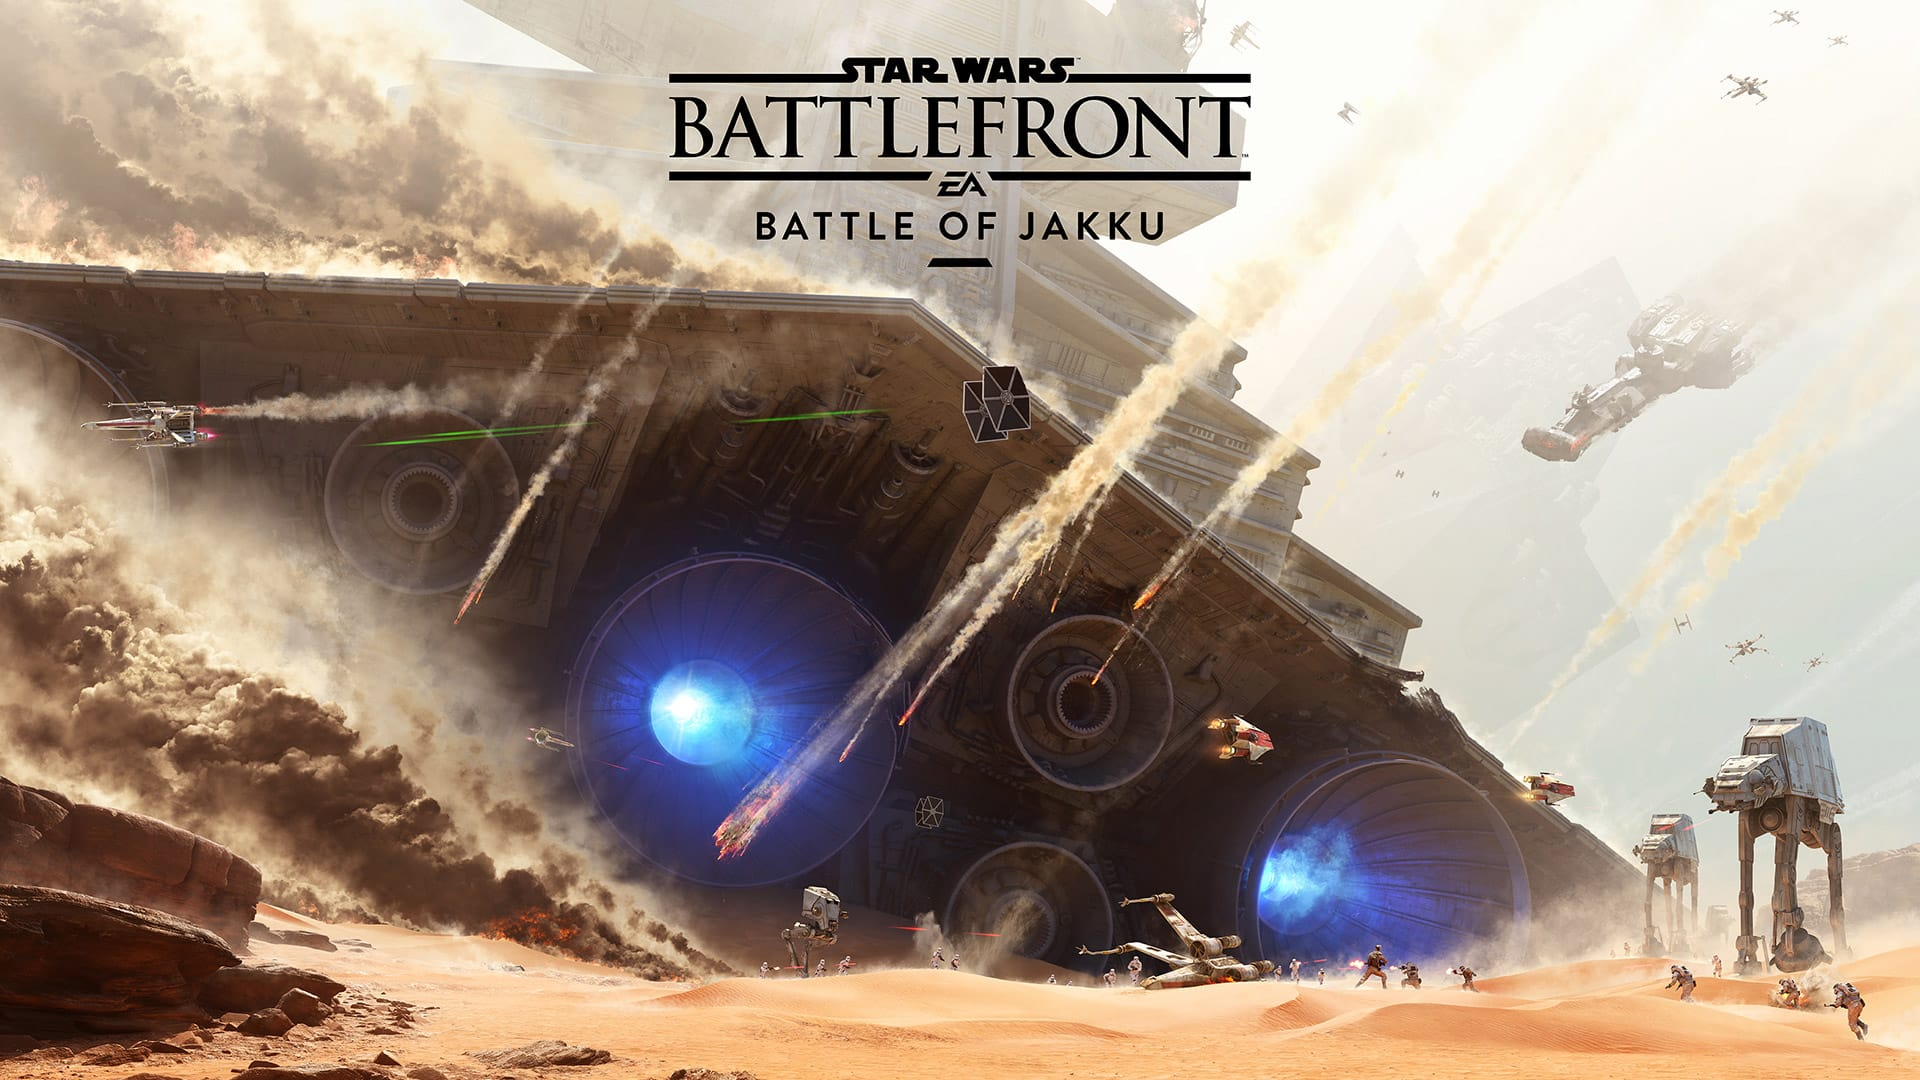 Star Wars Battlefront Battle for Jakku